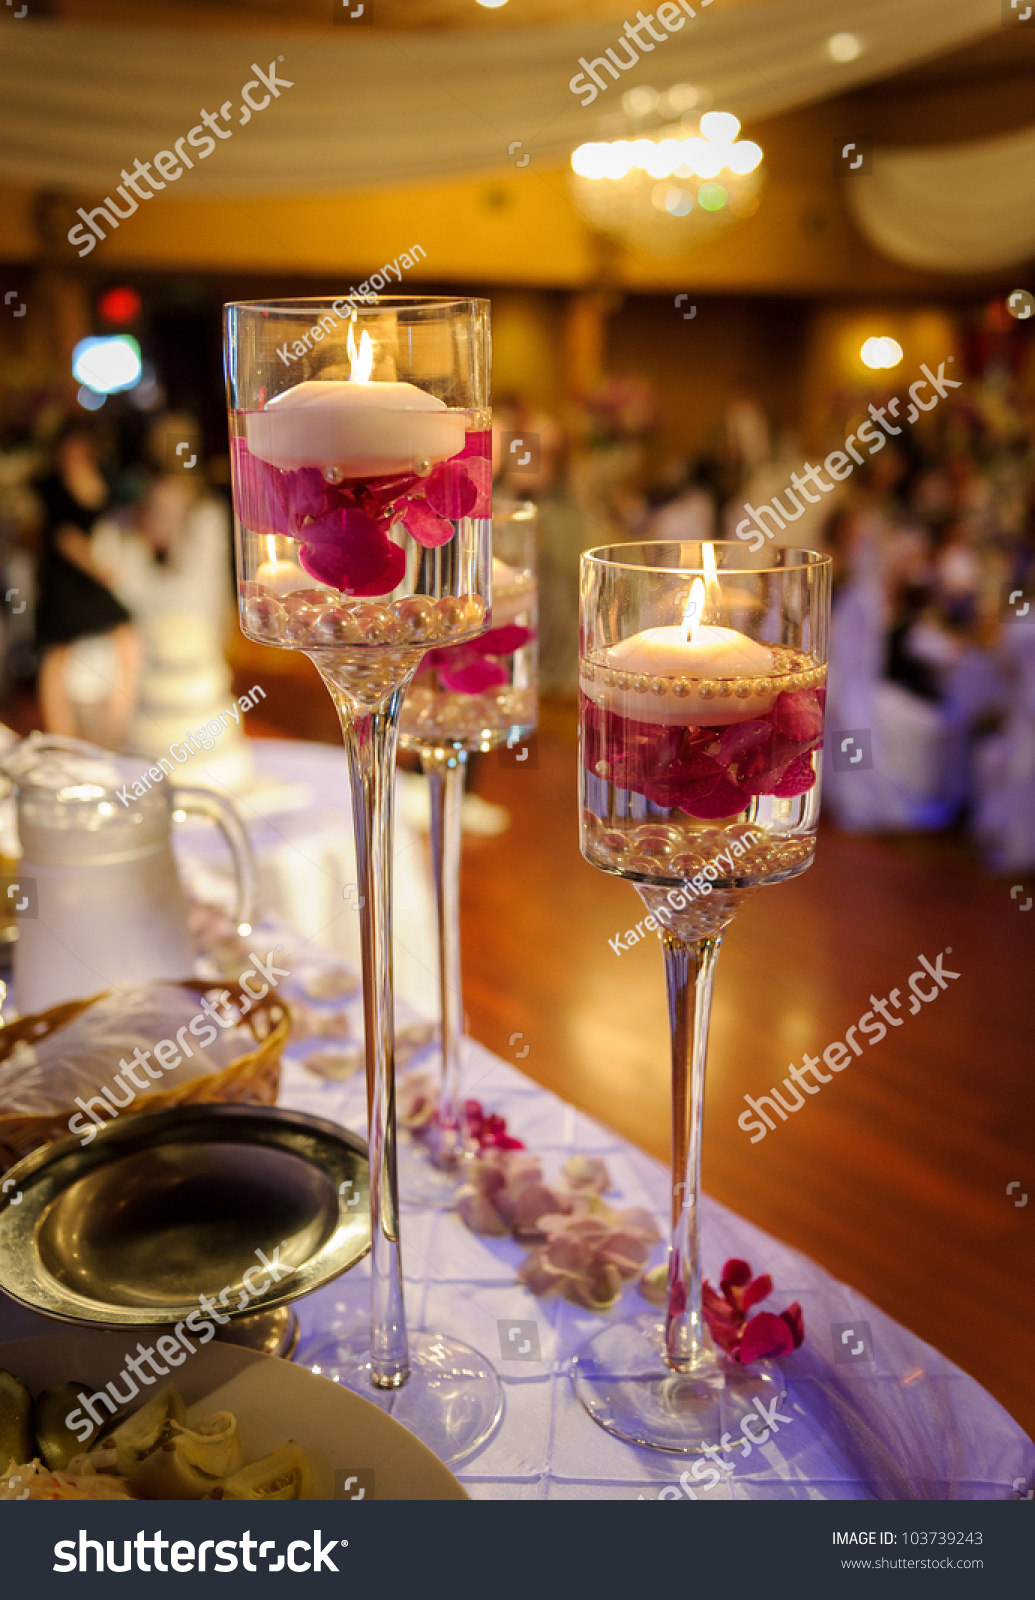 wedding table decoration - Table Decoration